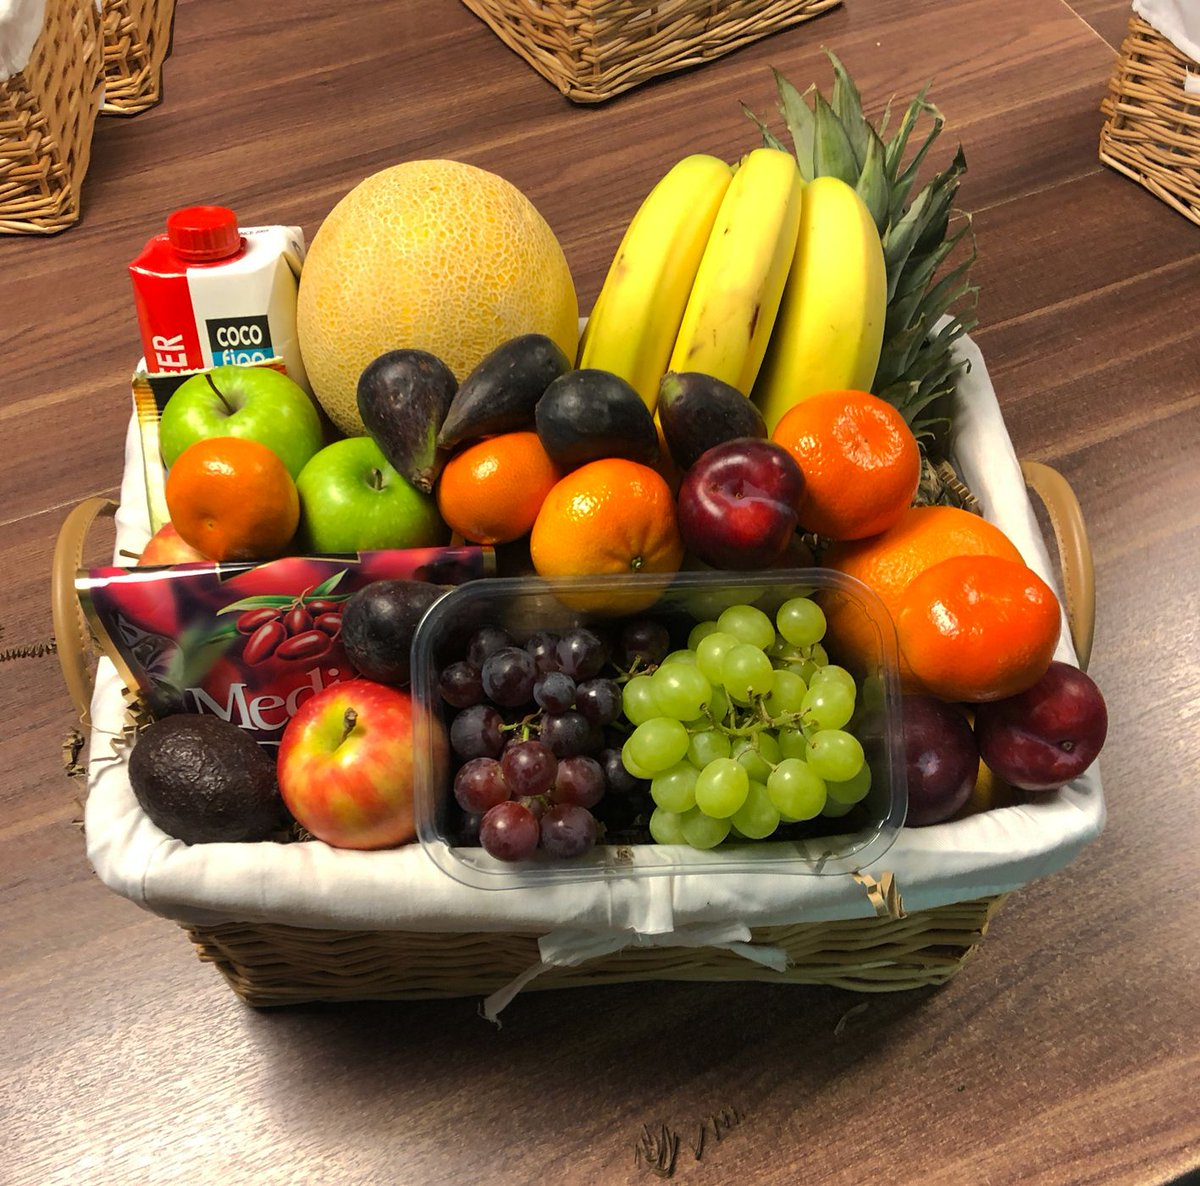 Today's Gift Basket Of The Day is .... XL Fruit Classic Gift Basket >>  RT, Like & Follow to enter #prize draw to #win a Gift Basket. More info via our blog. #dailydispatch #gifts #competition #goodluck #classic #sweet #fruity #win #prize